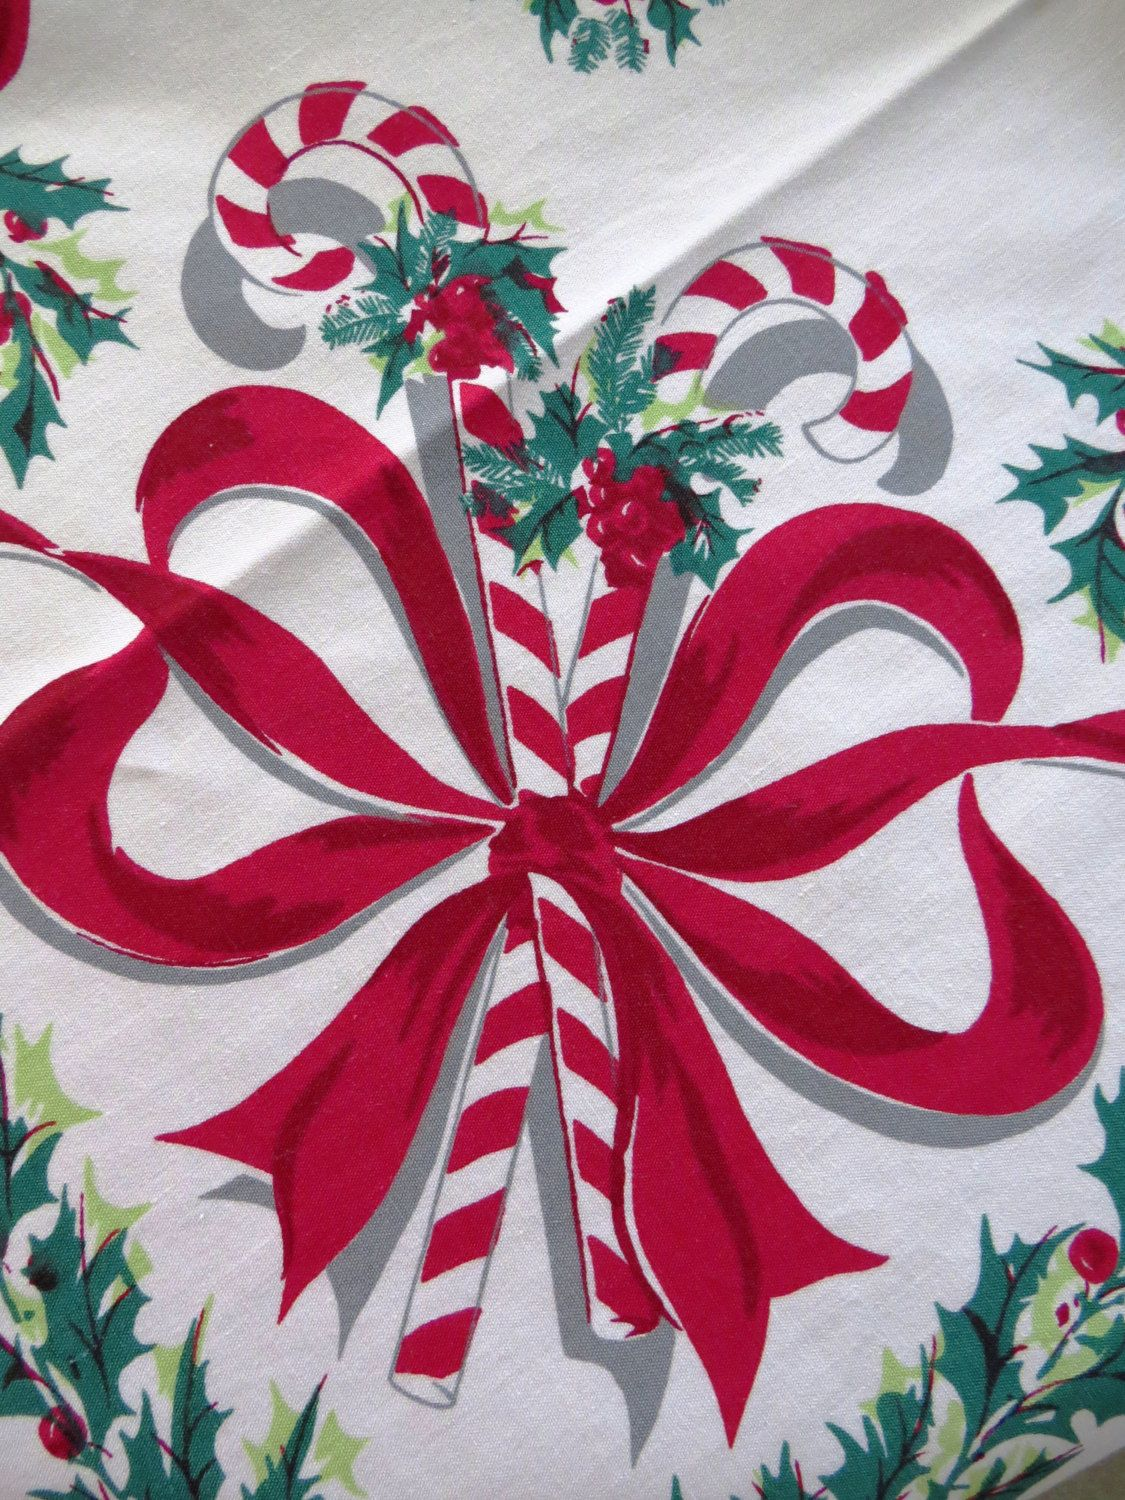 Large Candy Cane Decorations 1950S Large Christmas Tableclothsimtex  Candy Canes Holly